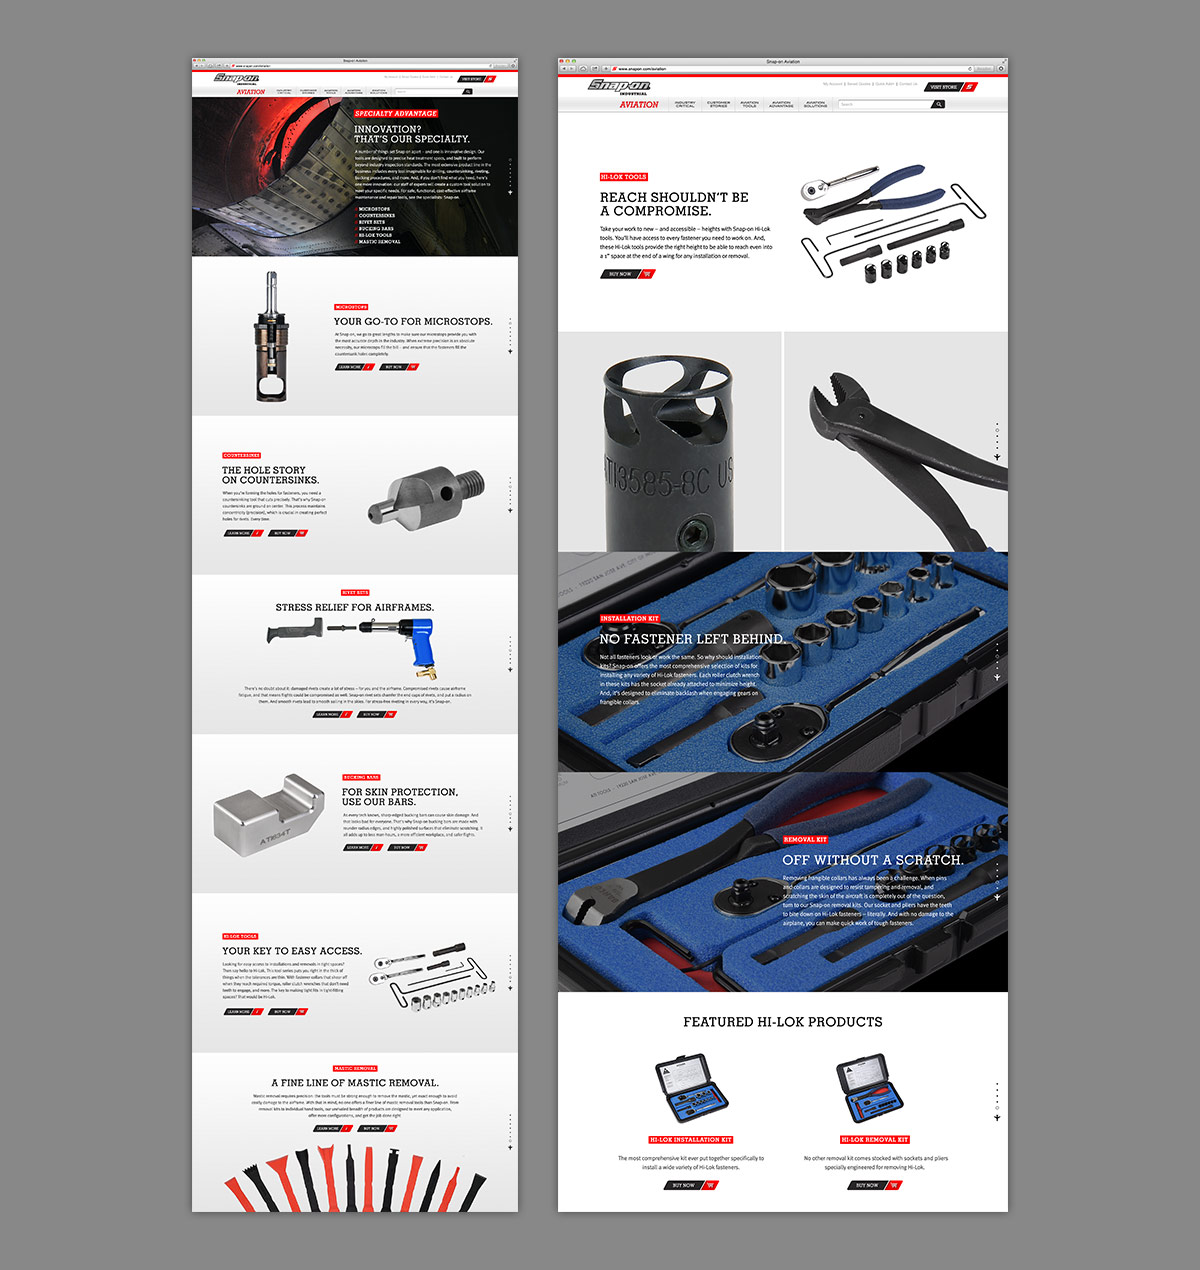 Snap-on-Pages-4.jpg